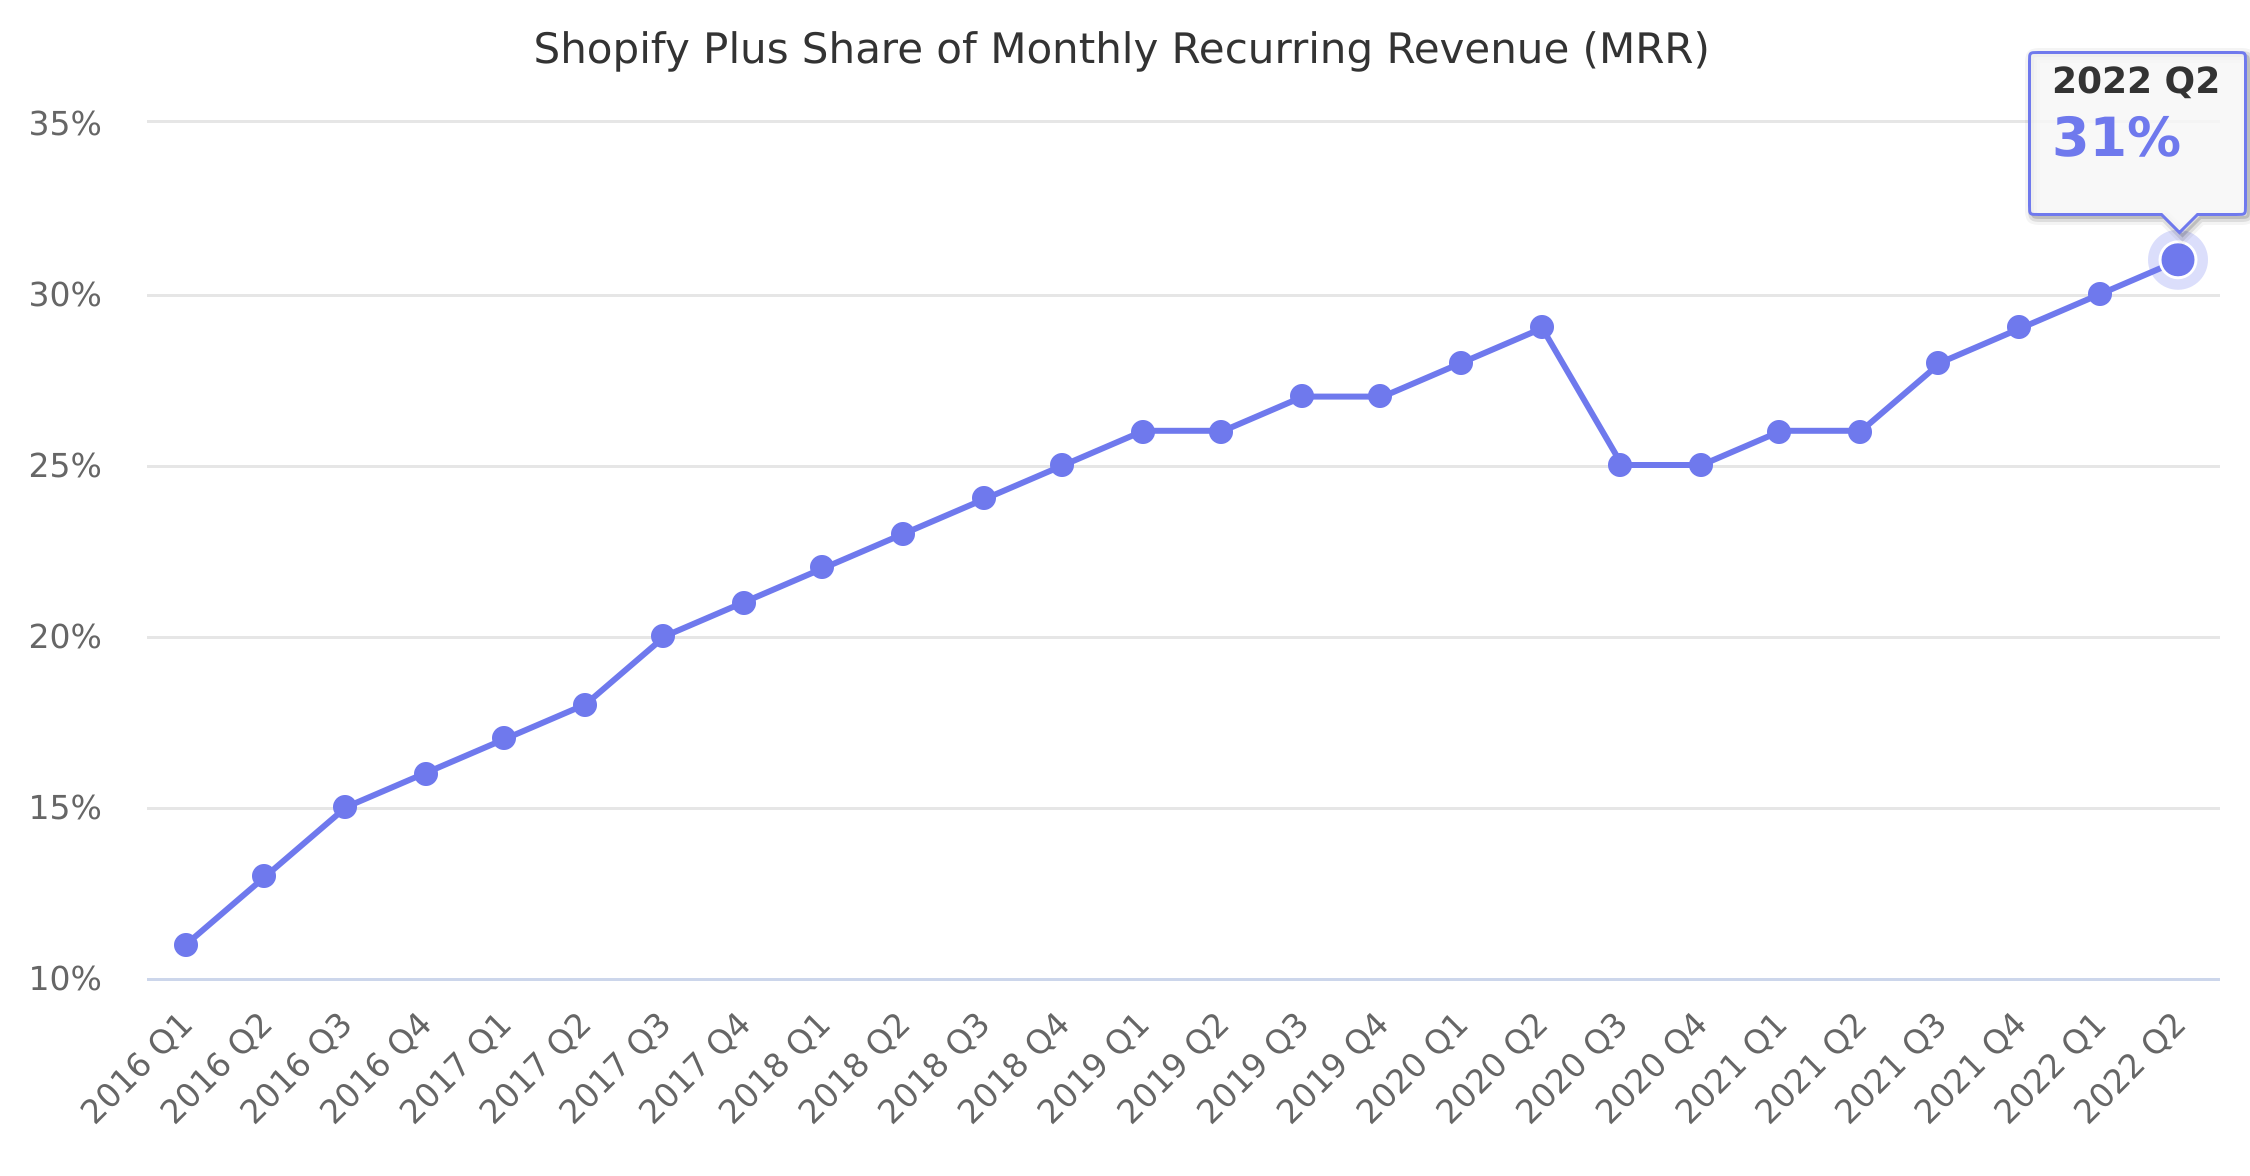 Shopify Plus Share of Monthly Recurring Revenue (MRR) 2016-2018